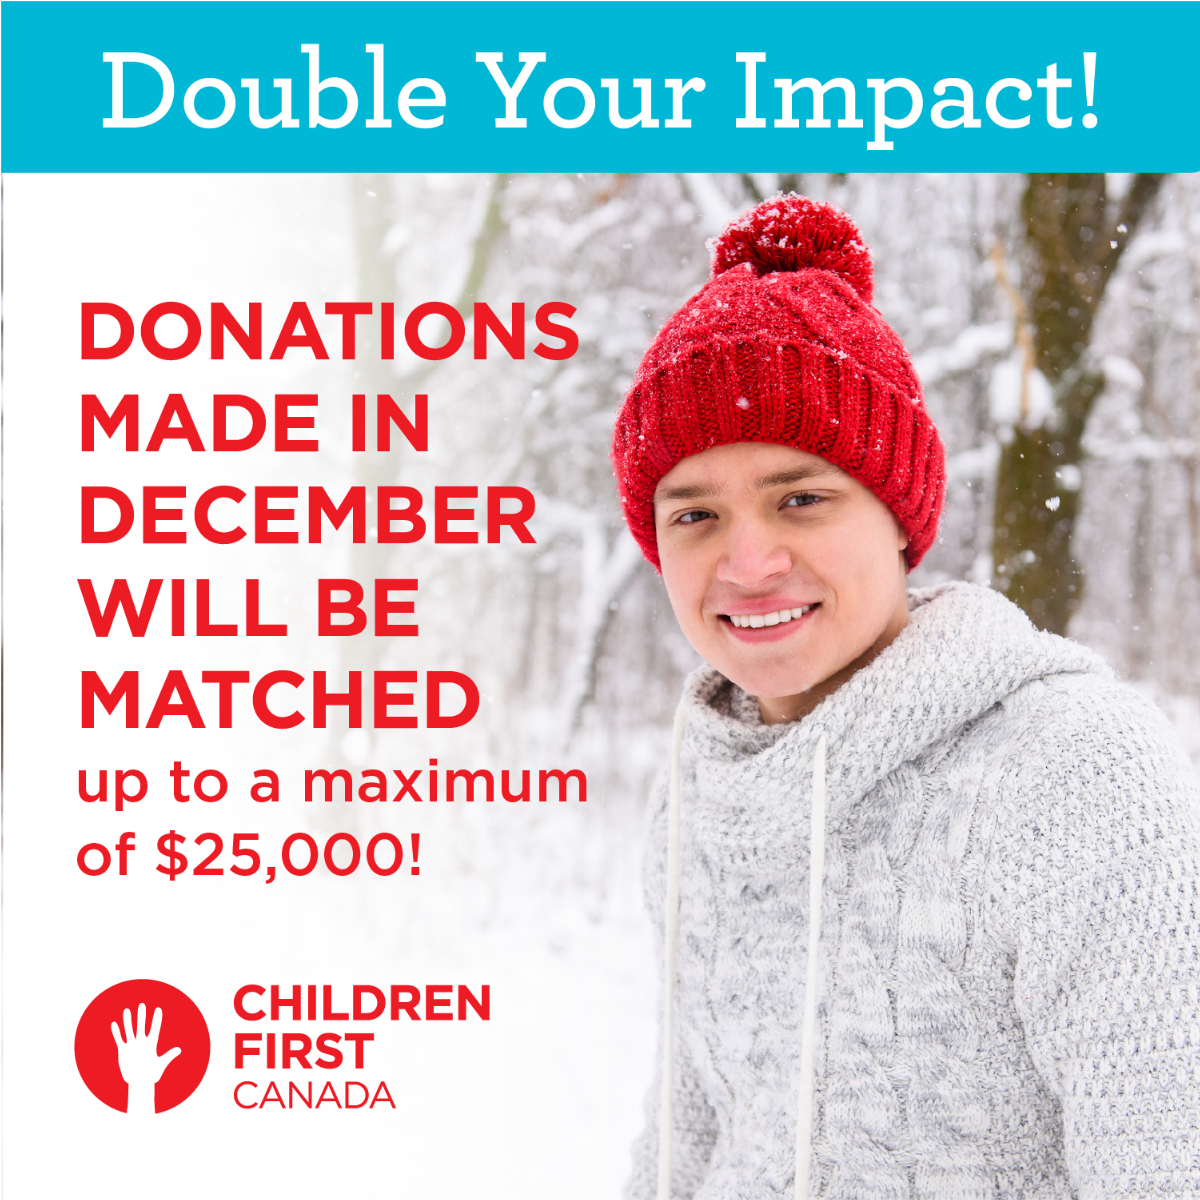 Donations made in December will be matched